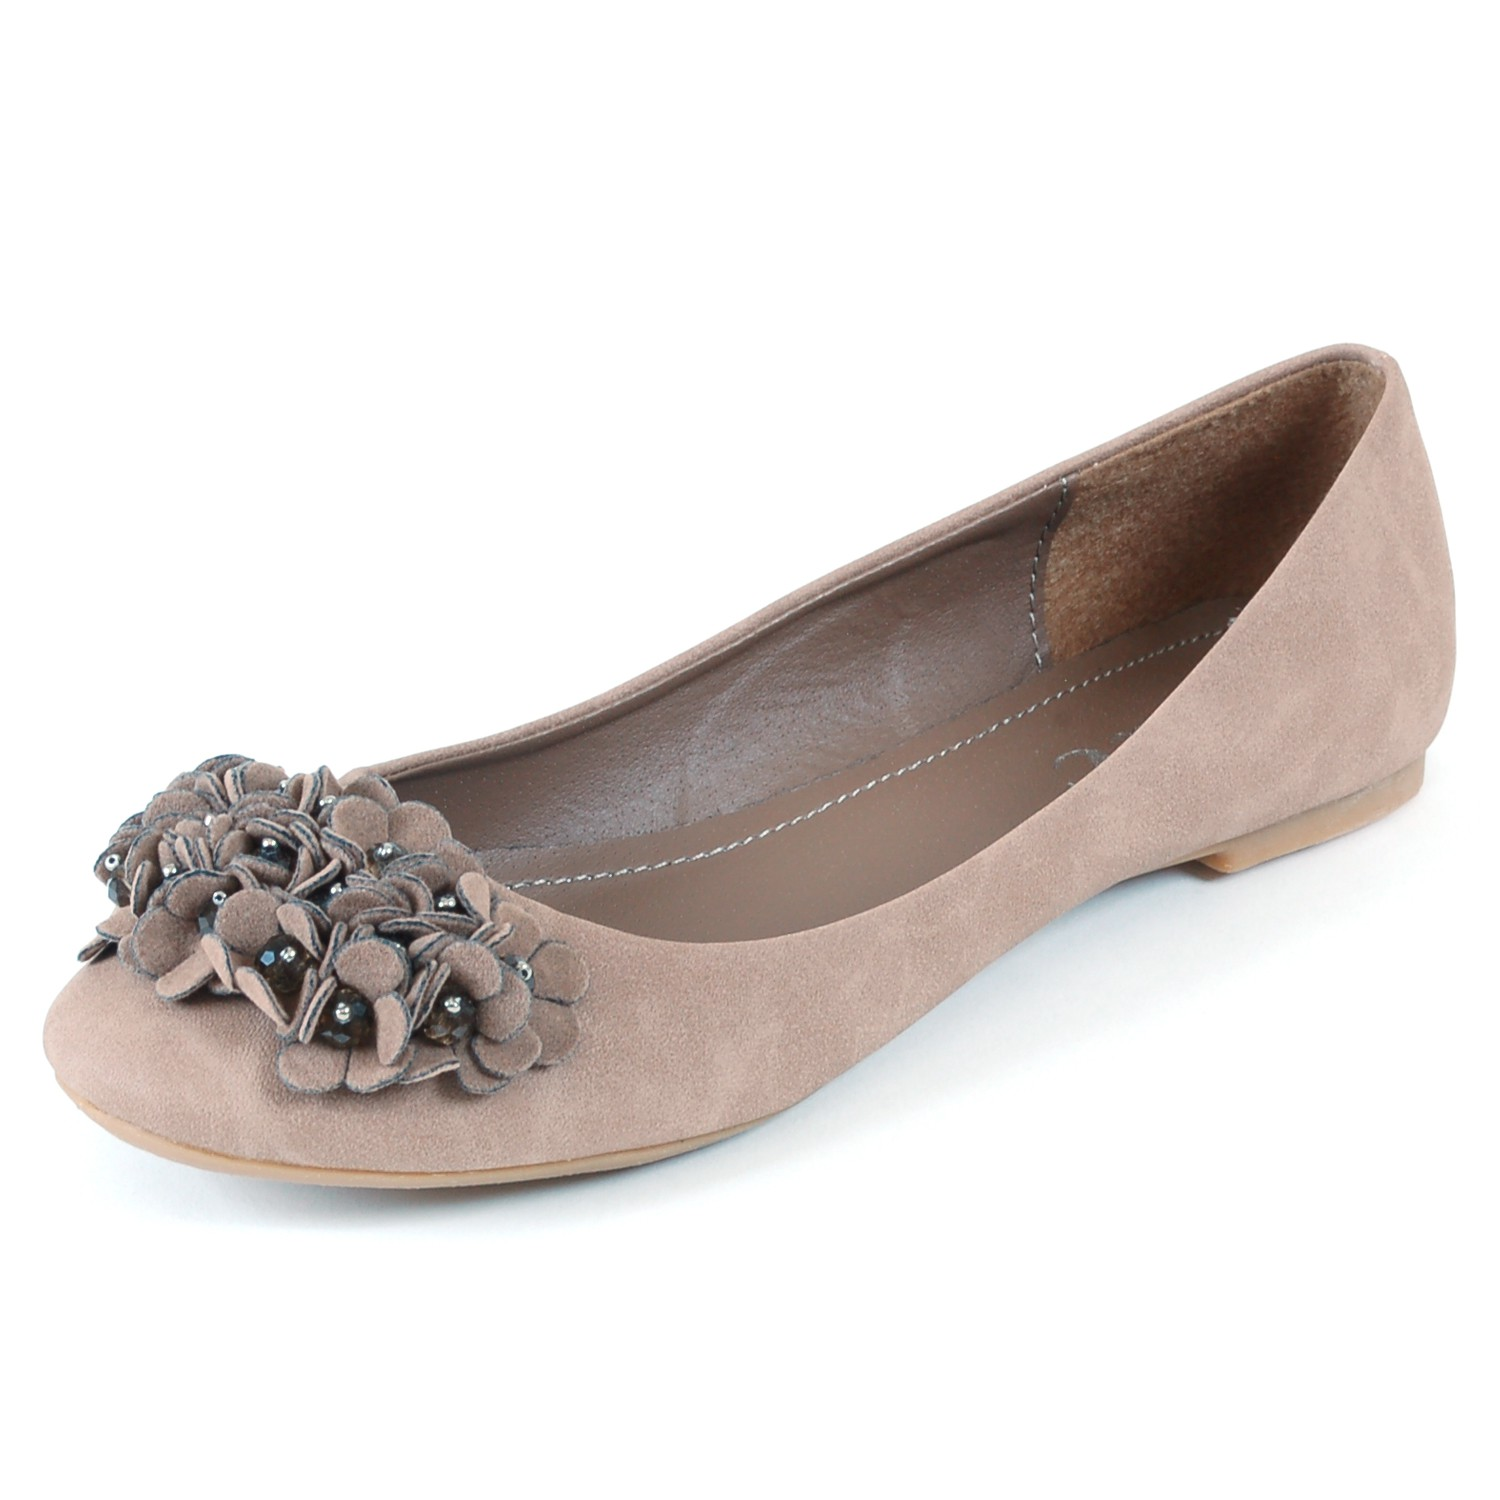 Designer ballet flats sale | Shop women's ballet flat shoes in leather, faux-leather & suede. Designer ballet flats sale | Shop women's ballet flat shoes in leather, faux-leather & suede. Buy luxury fashion brands for less at THE OUTNET.